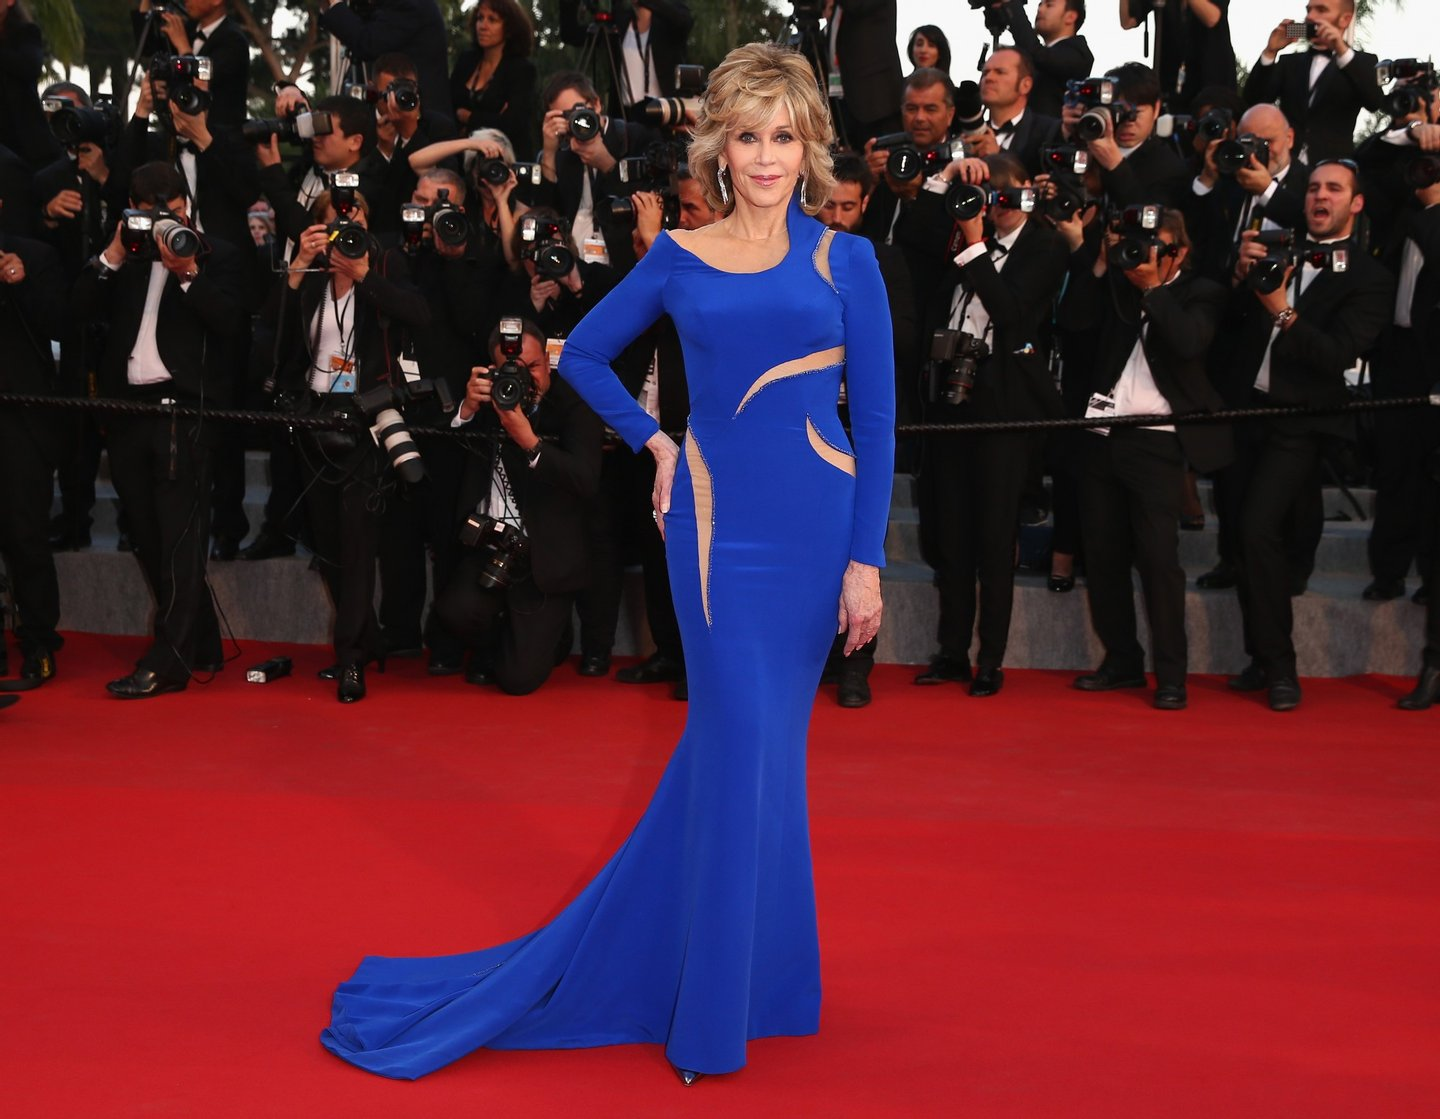 """CANNES, FRANCE - MAY 16: Jane Fonda attends the Premiere of """"The Sea Of Trees"""" during the 68th annual Cannes Film Festival on May 16, 2015 in Cannes, France. (Photo by Andreas Rentz/Getty Images)"""